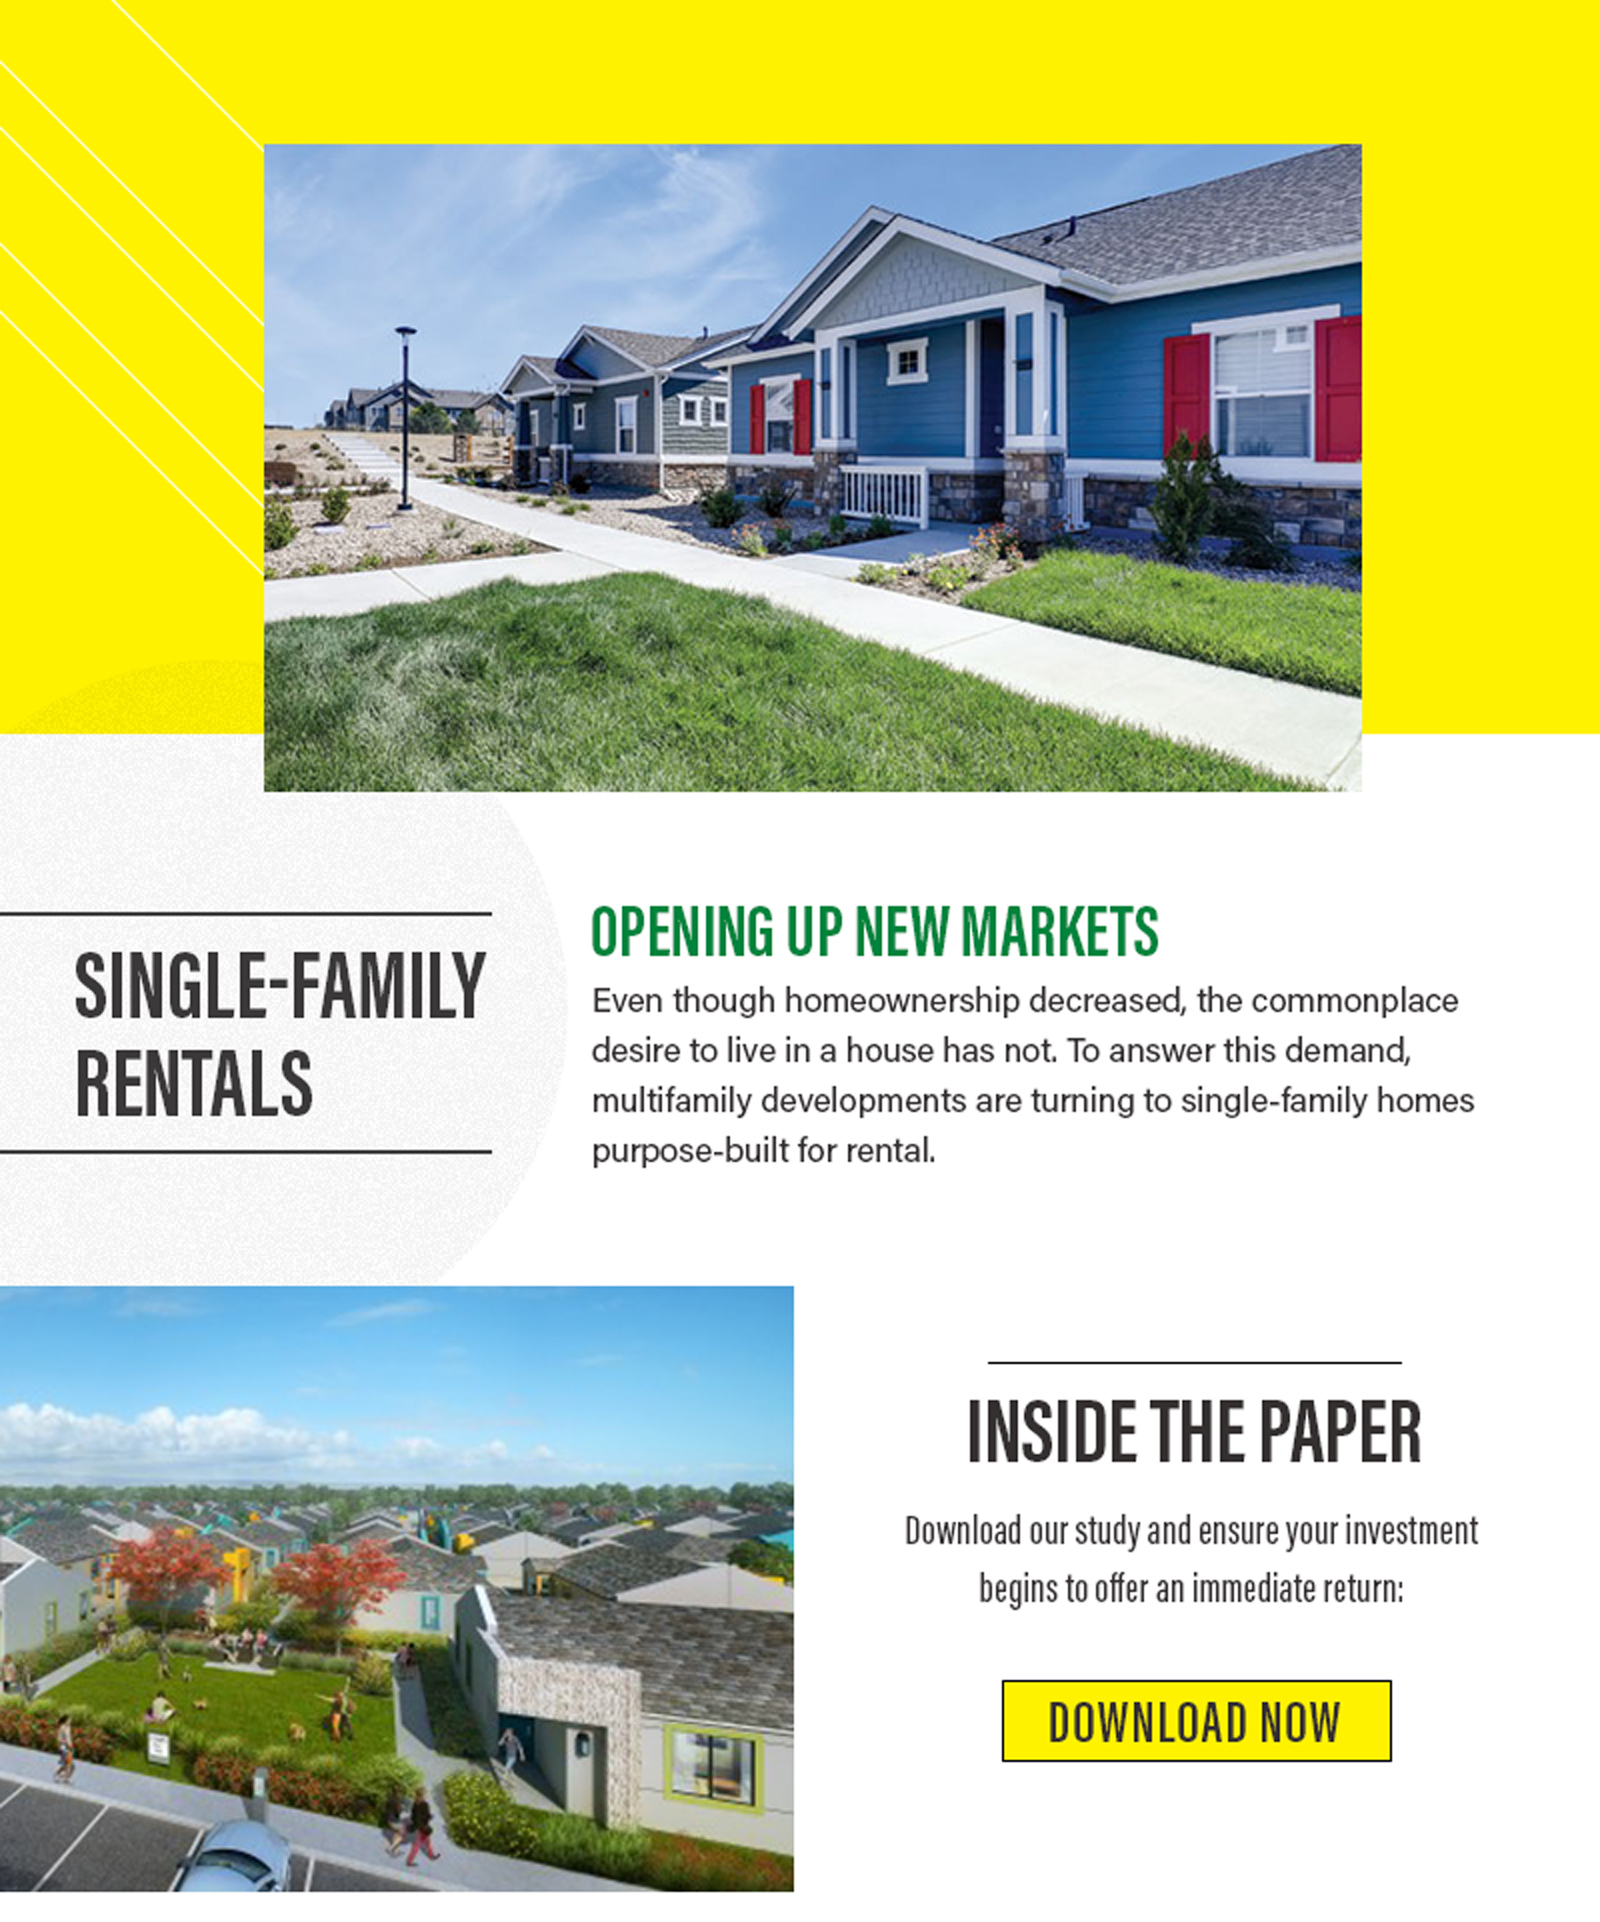 Single-Family Rentals are opening up new markets. Download the paper now.